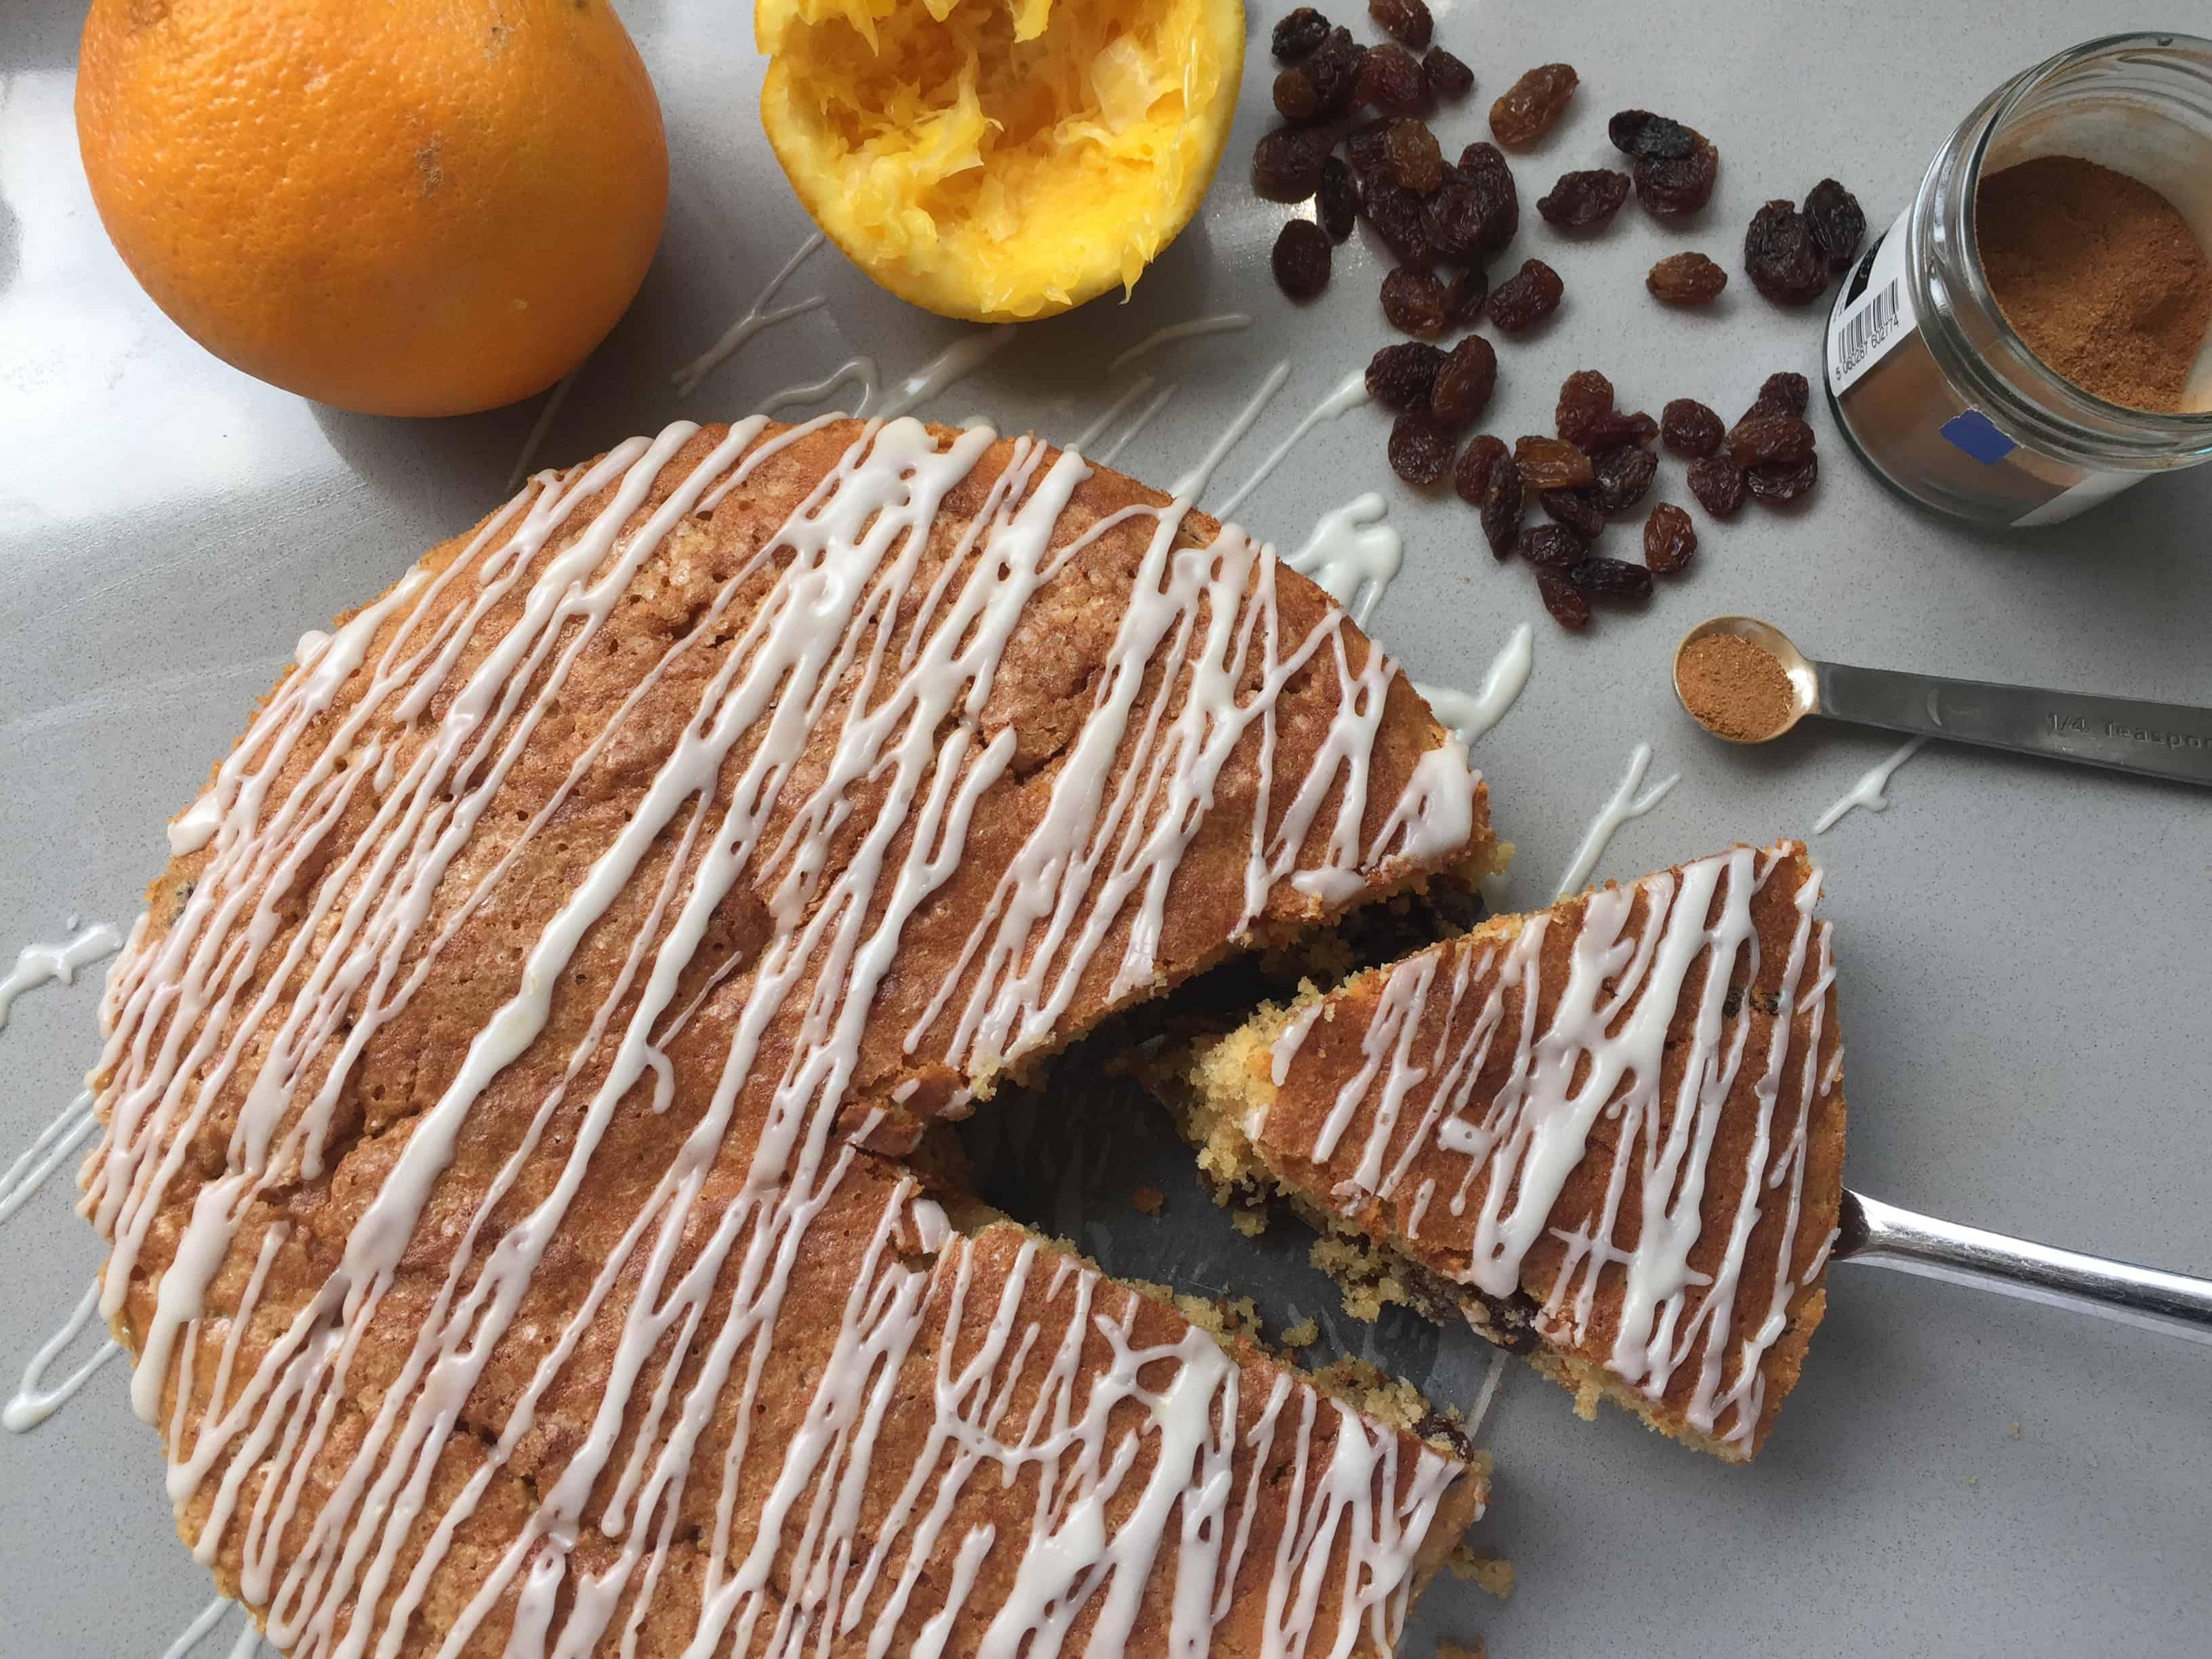 Overhead shot of a sliced cake on a grey counter top.